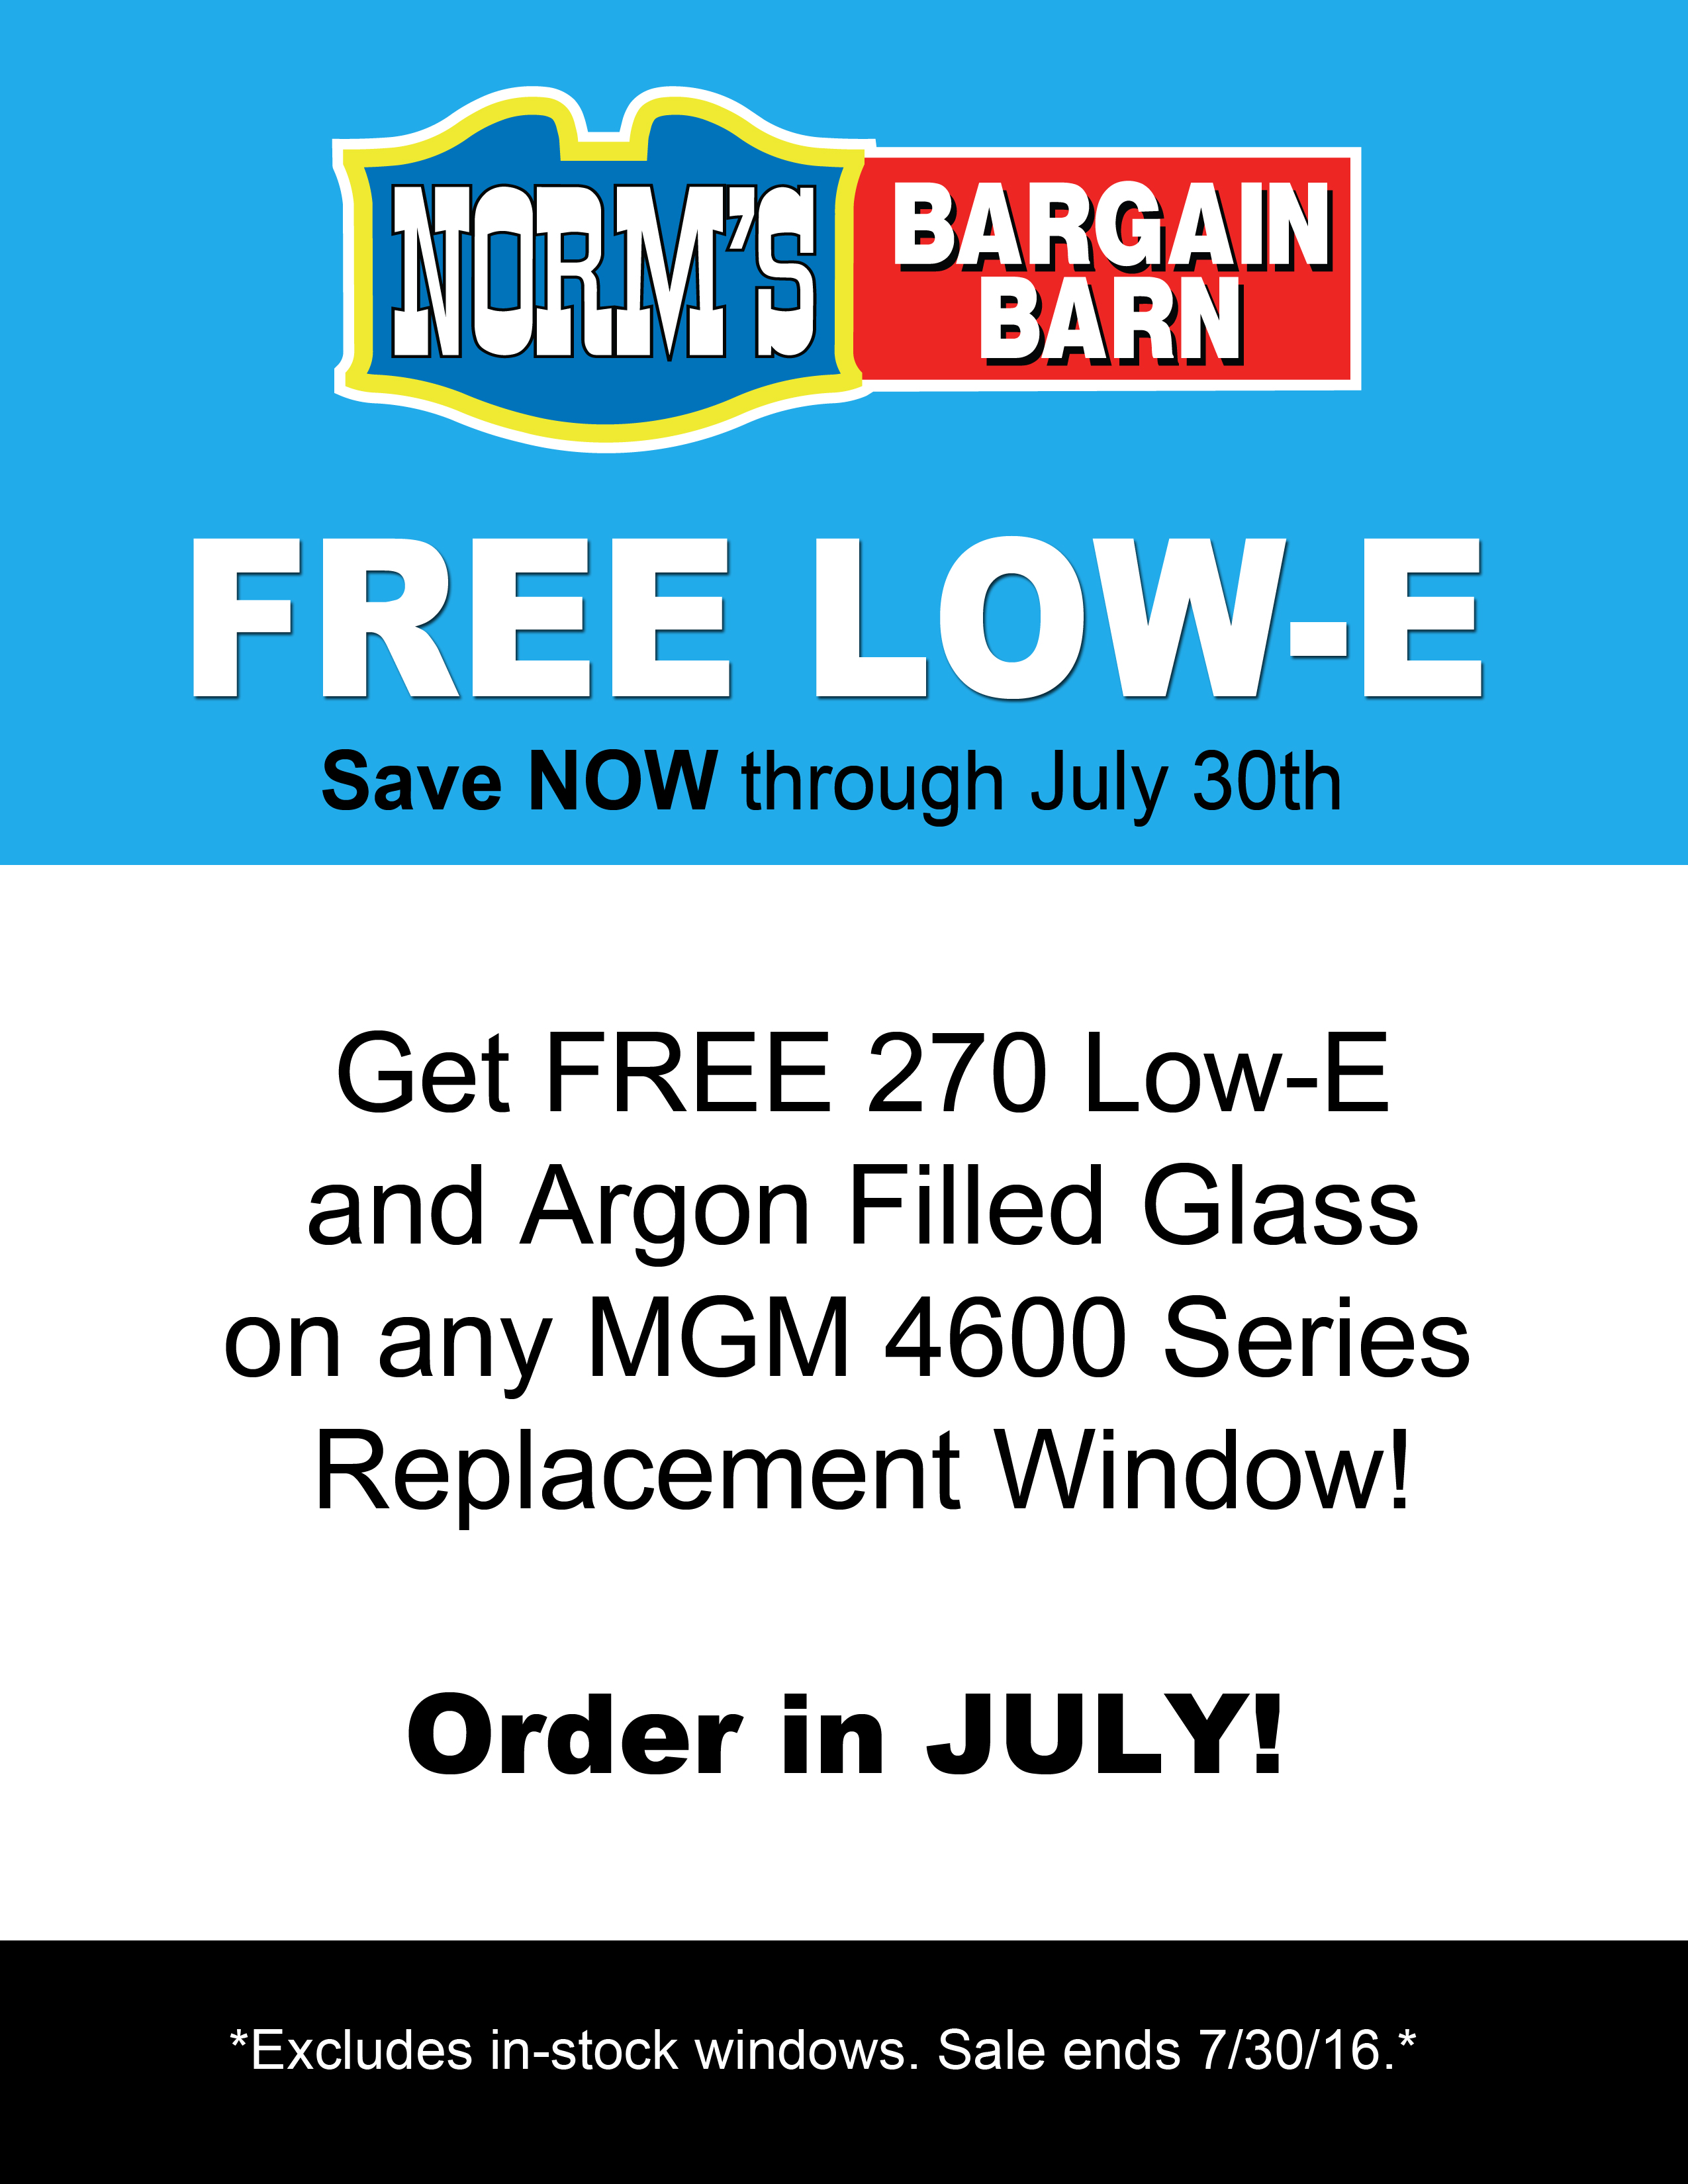 Need Replacement Windows Find Out About These Free